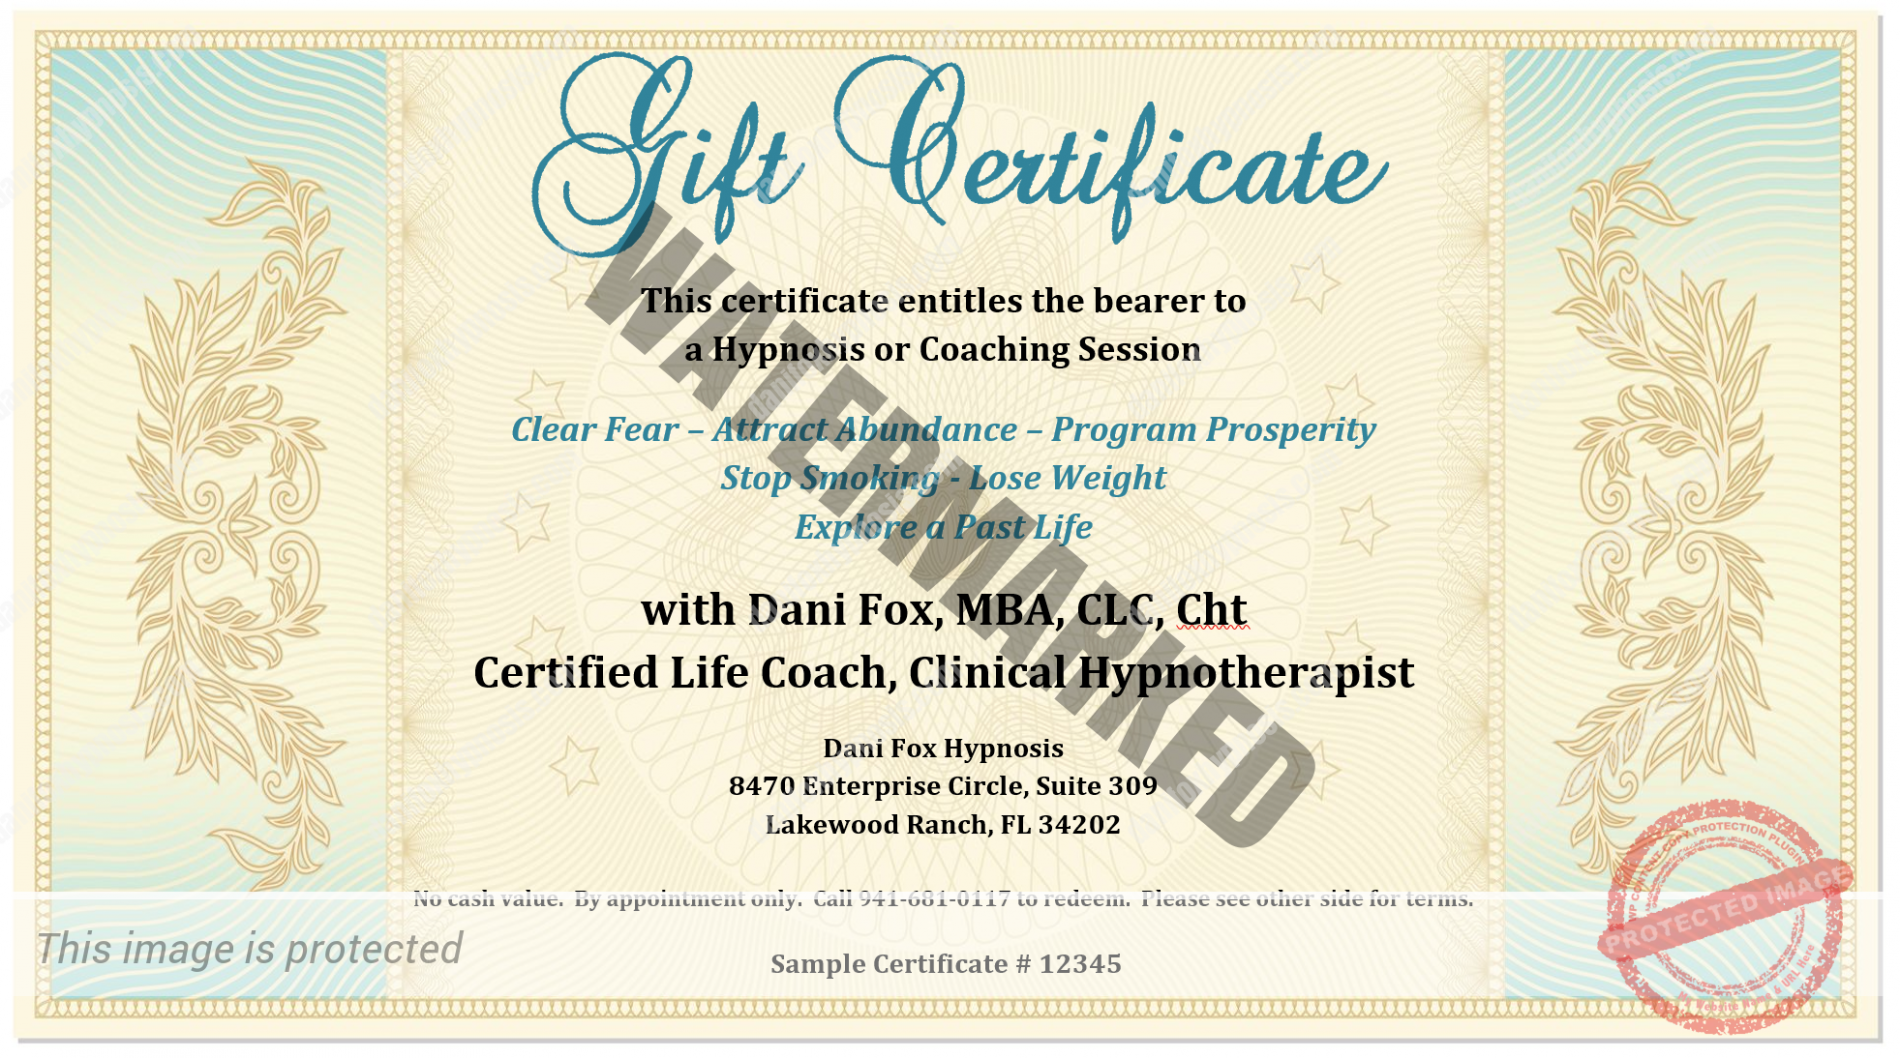 this entitles the bearer to template certificate - gift certificate dani fox hypnosis